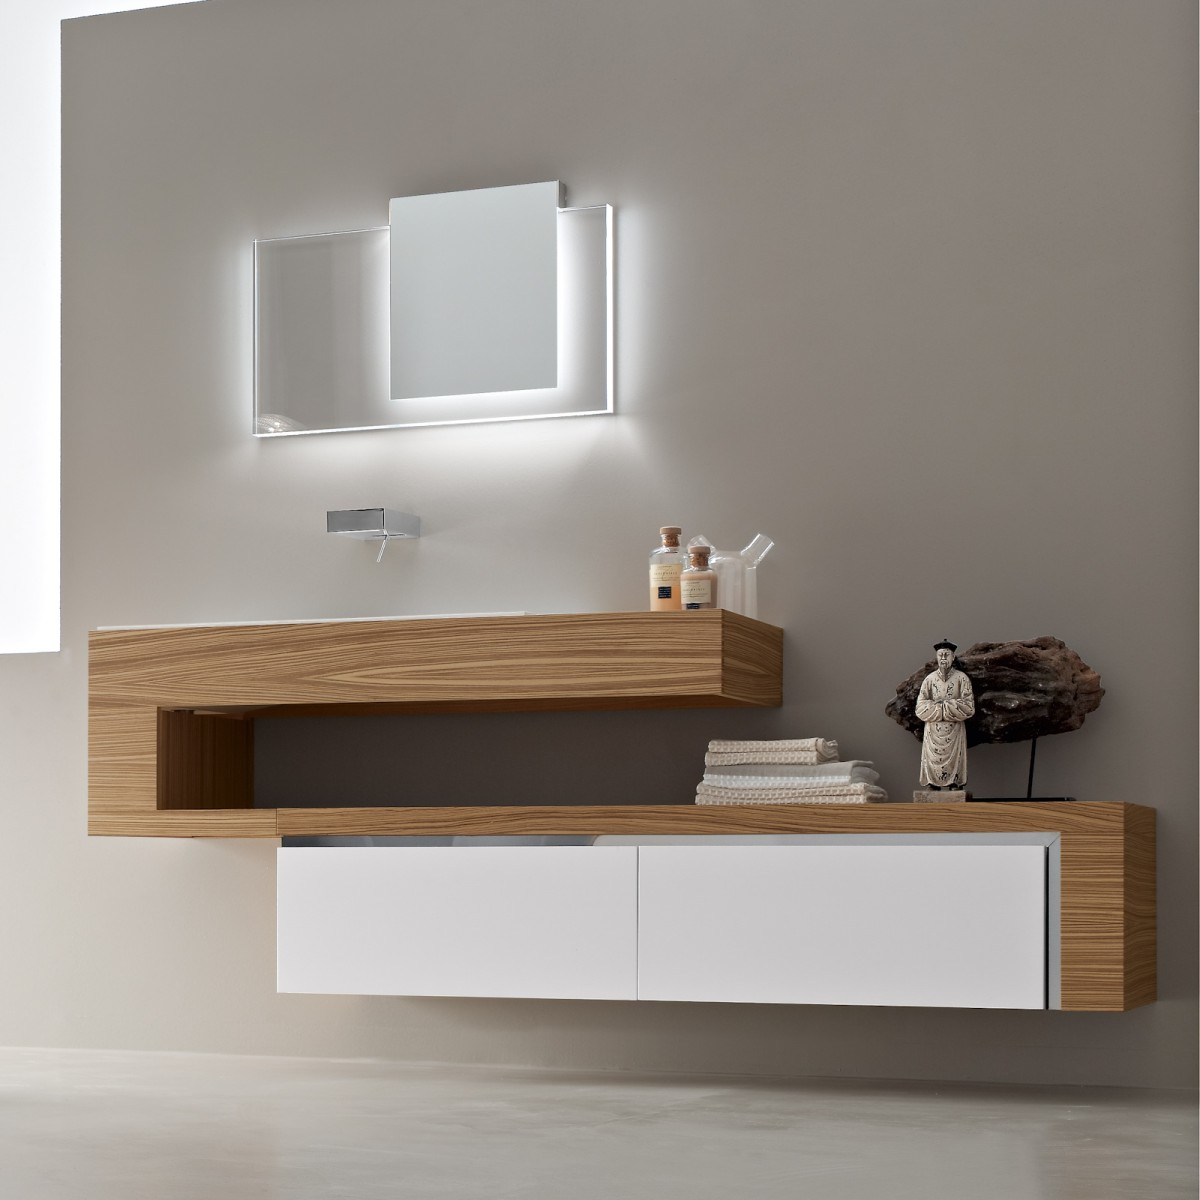 Vanity Designs Entrancing Ultra Modern Italian Bathroom Design Decorating Design